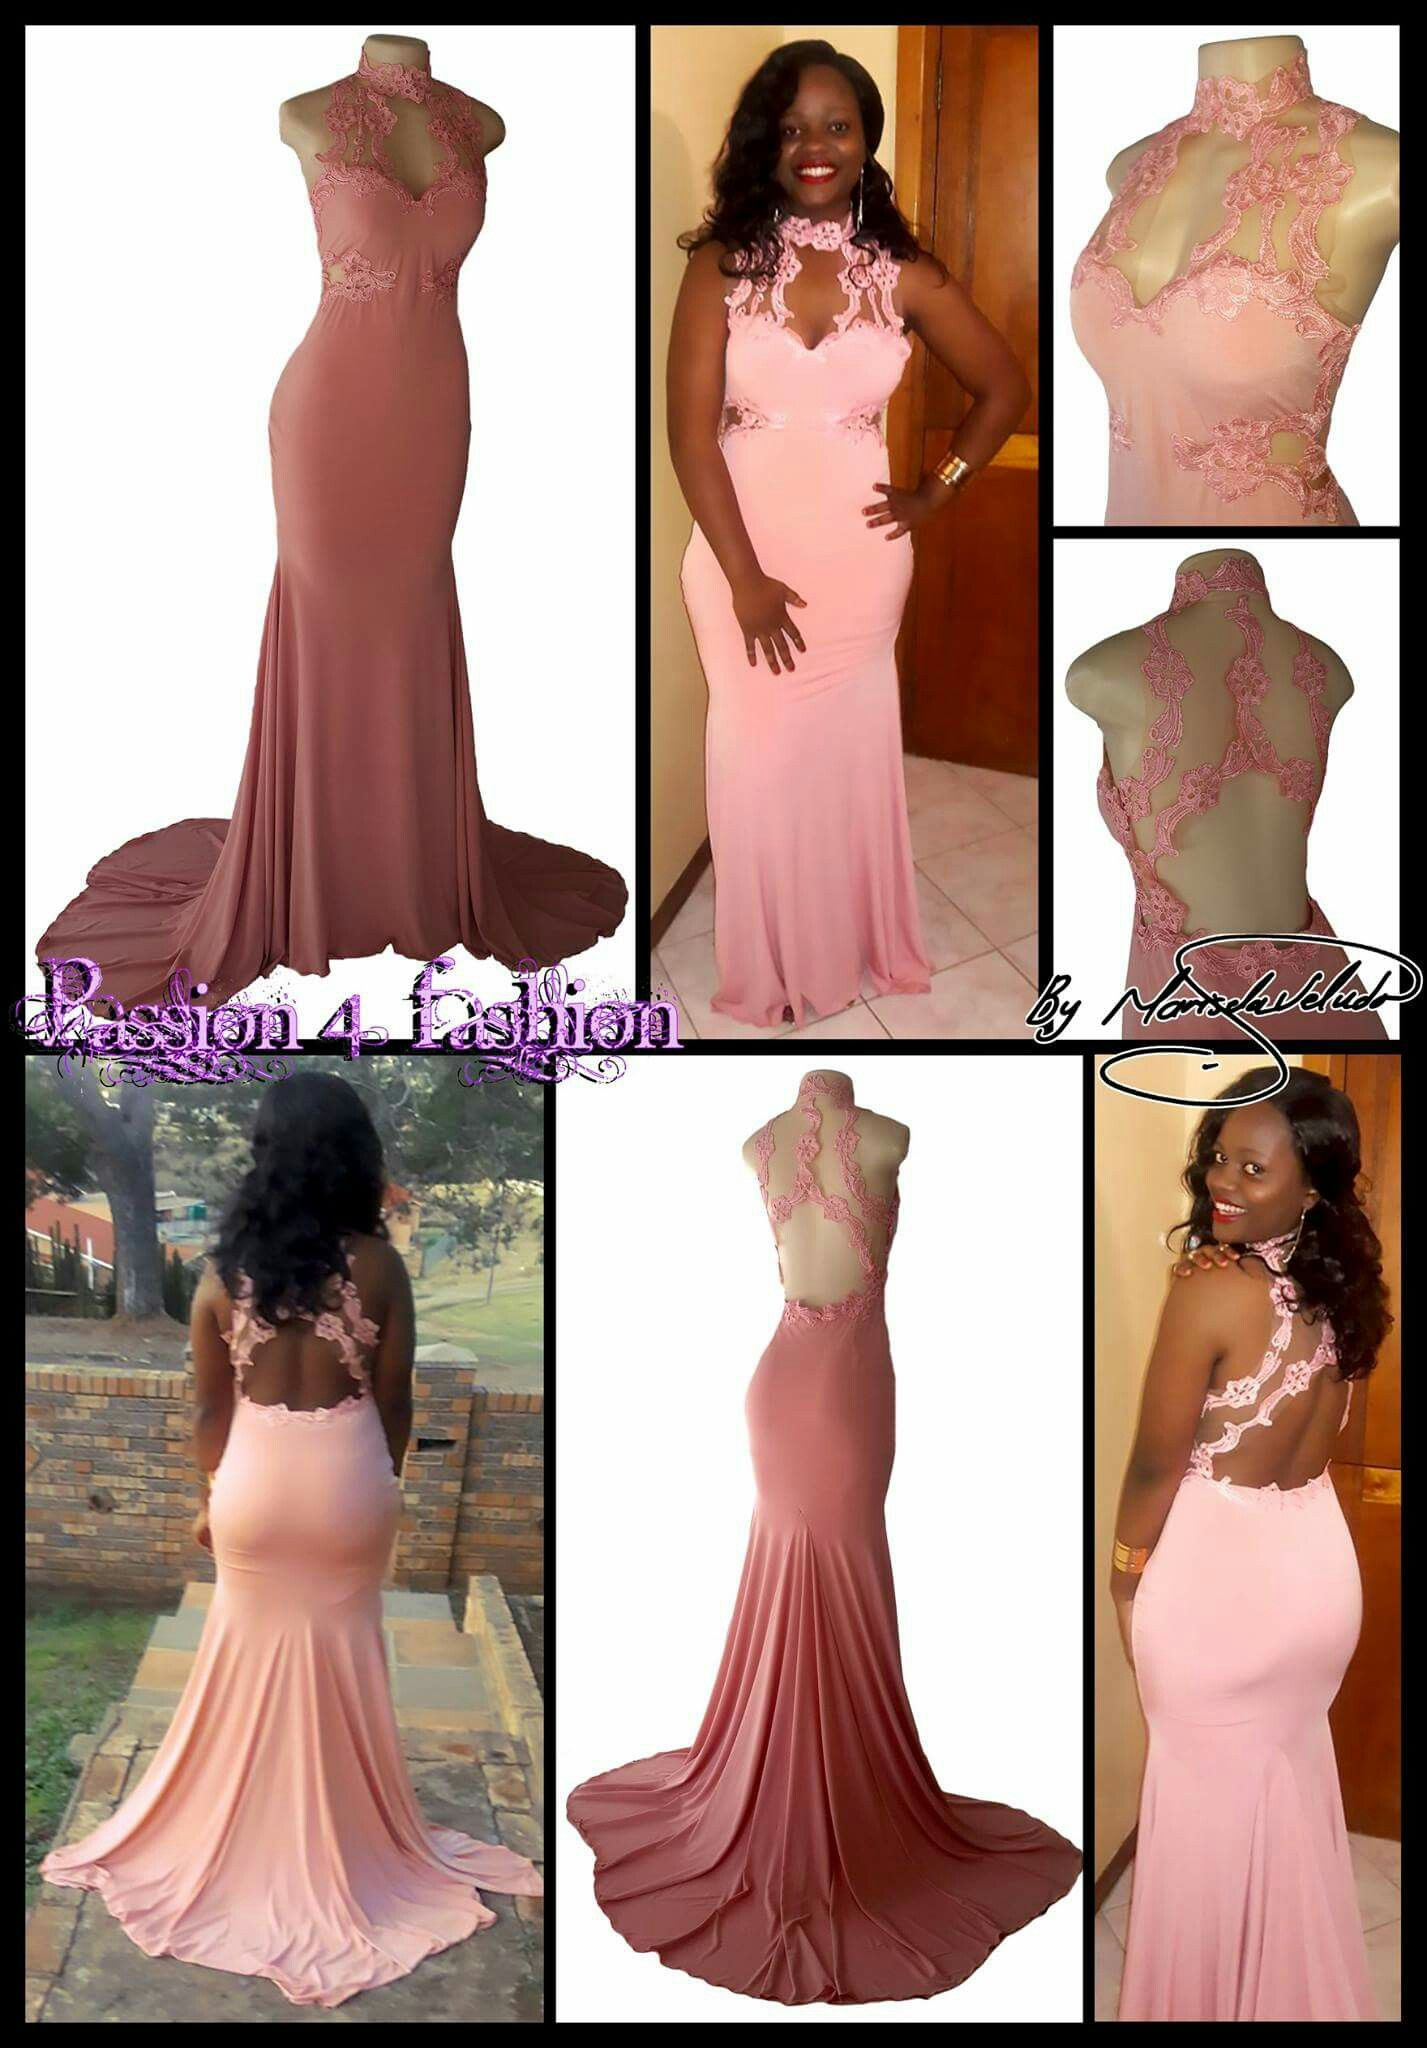 aca2cdc99f8f Peach soft mermaid matric farewell dress with a choker neckline and lace  detail on the bodice and back. #mariselaveludo #fashion #matricdance  #matricdress ...